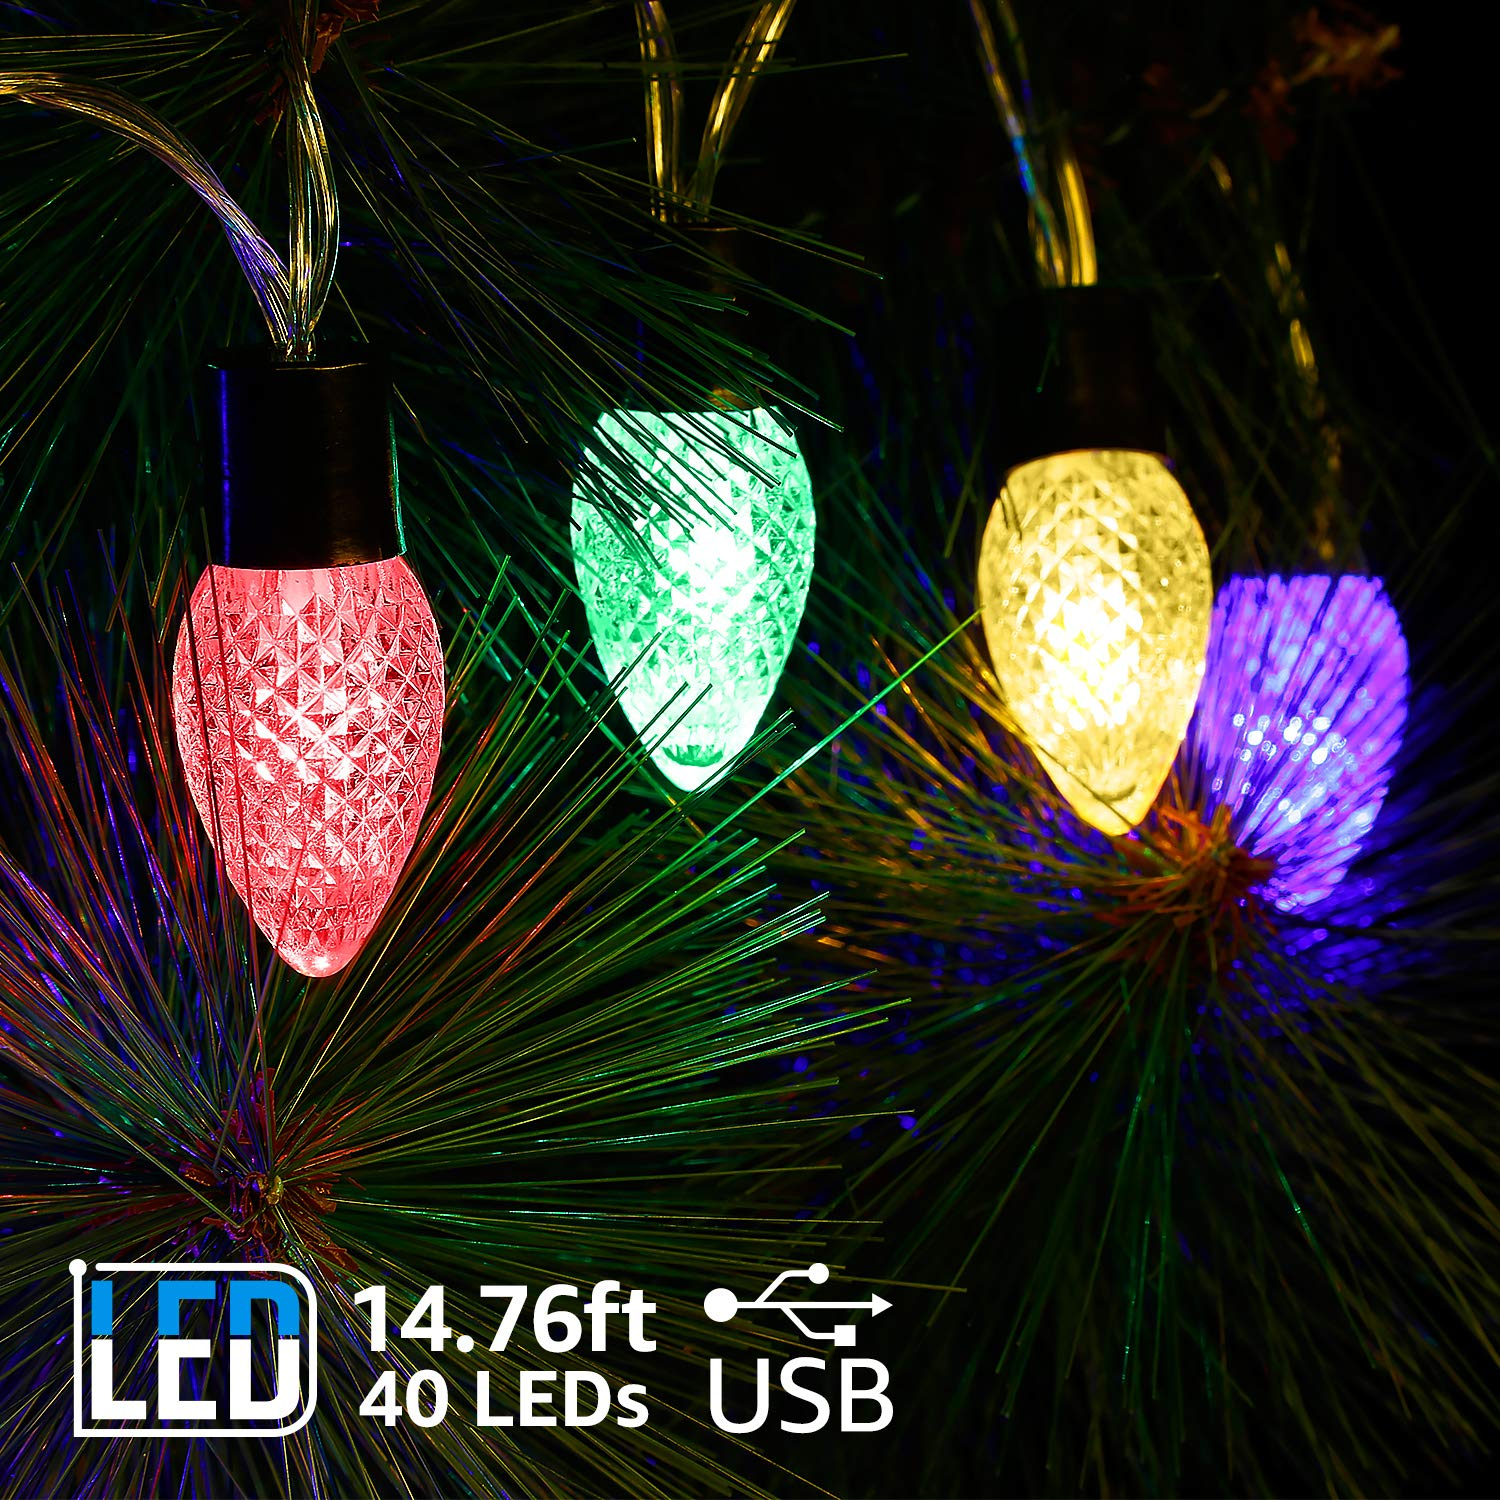 TORCHSTAR 14.76ft LED Strawberry String Lights, 40 C7 Bulbs, USB Supplied, Multi-Color Lighting for Halloween, Christmas, New Year, Party, Holiday Celebration, Wedding Decoration